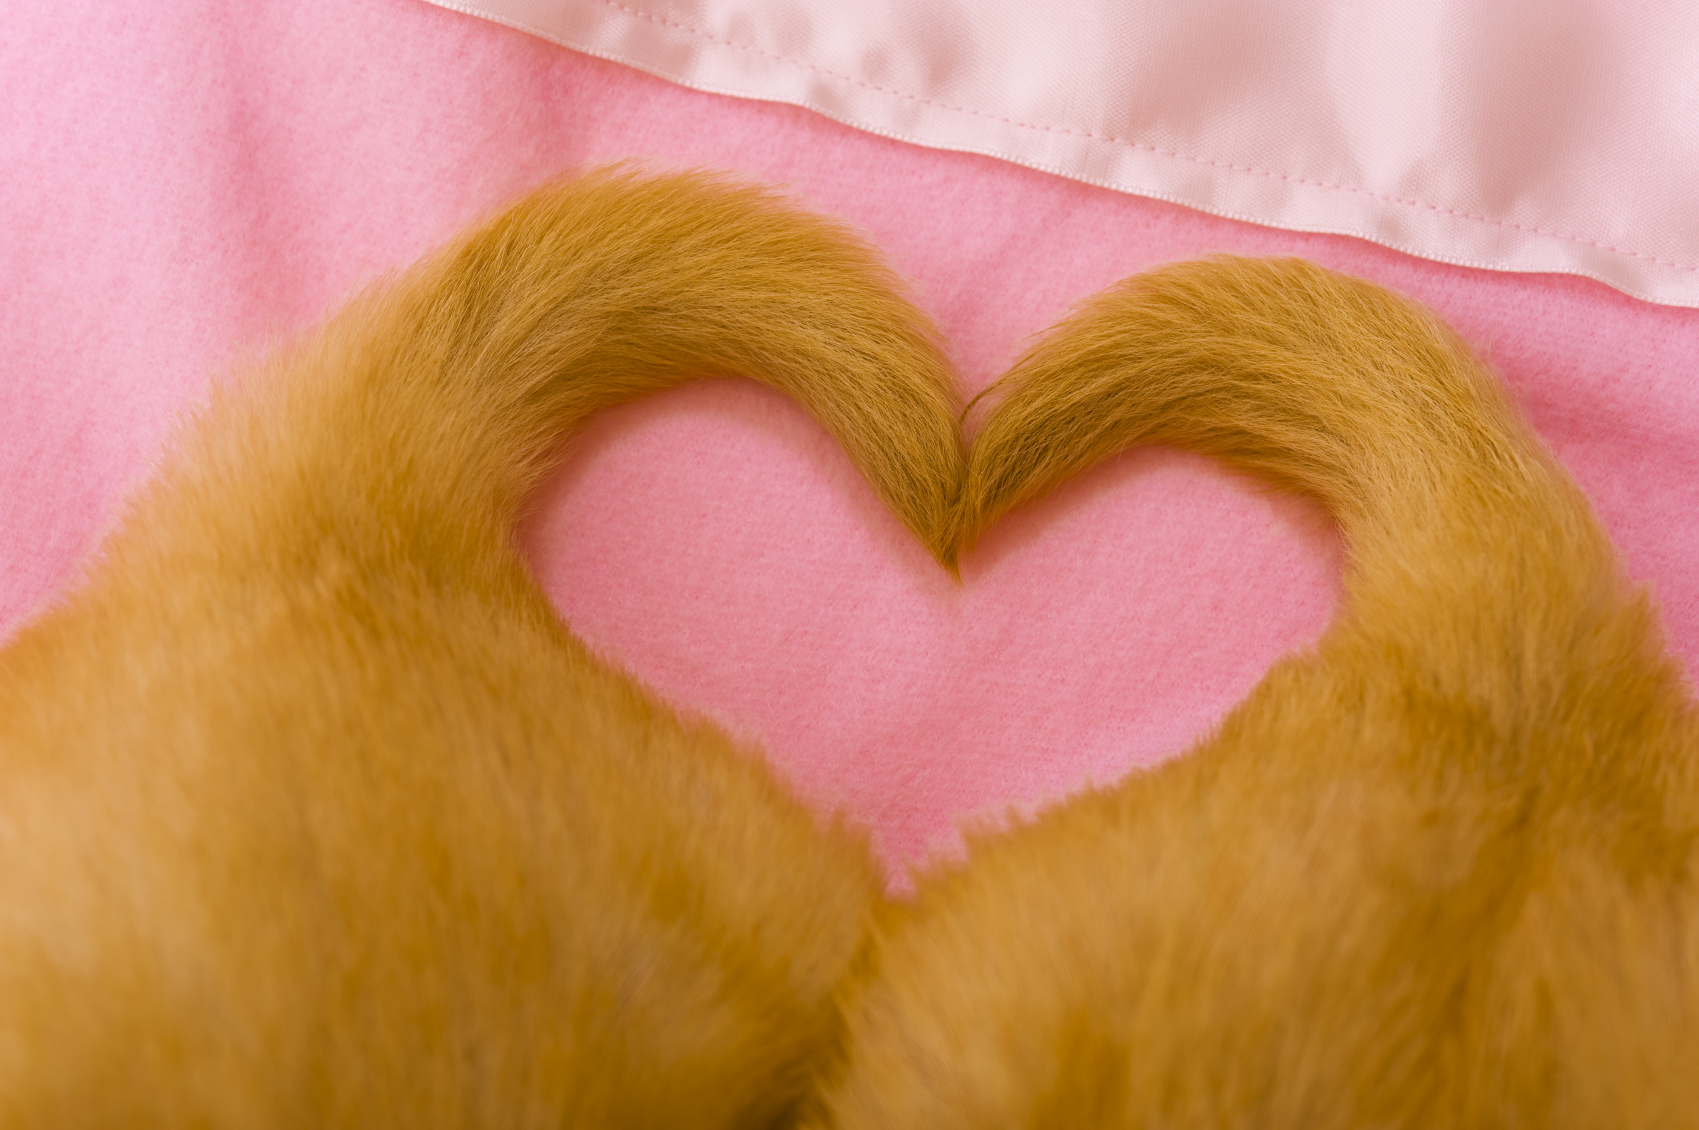 A pair of cute adorable 4 week old Golden Retriever puppies with their tails in the shape of a heart as they lay on a pink baby blanket